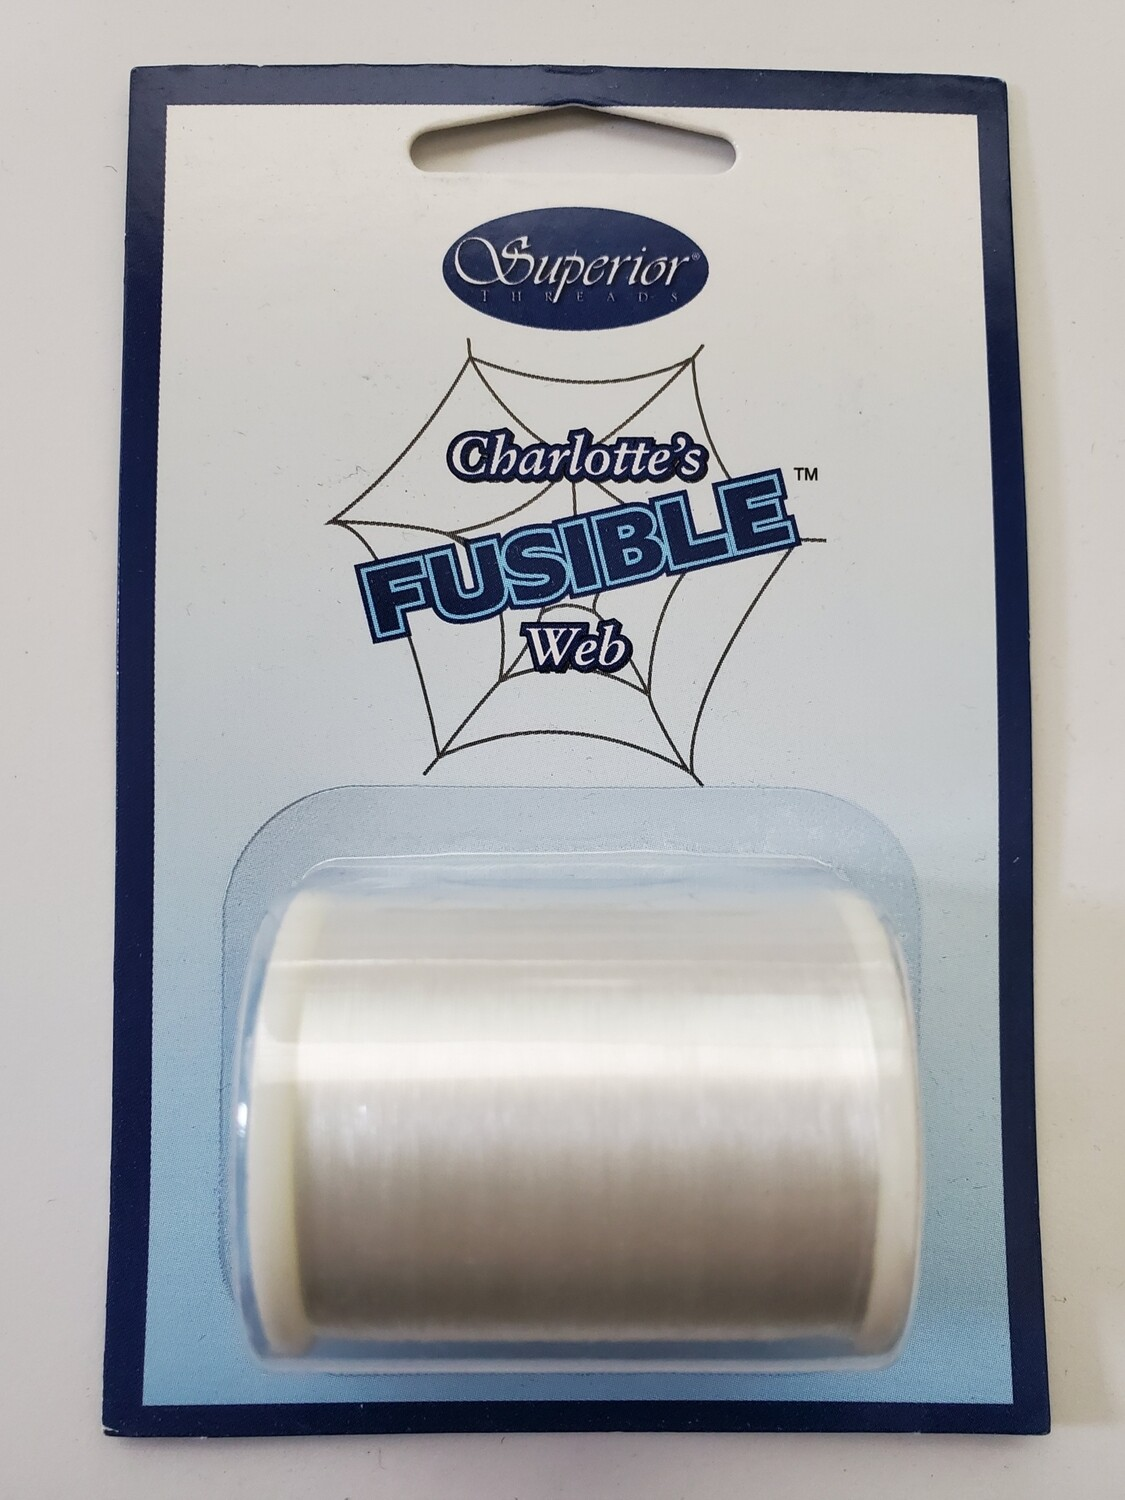 Charlotte's Fusible Web Thread - Superior Threads